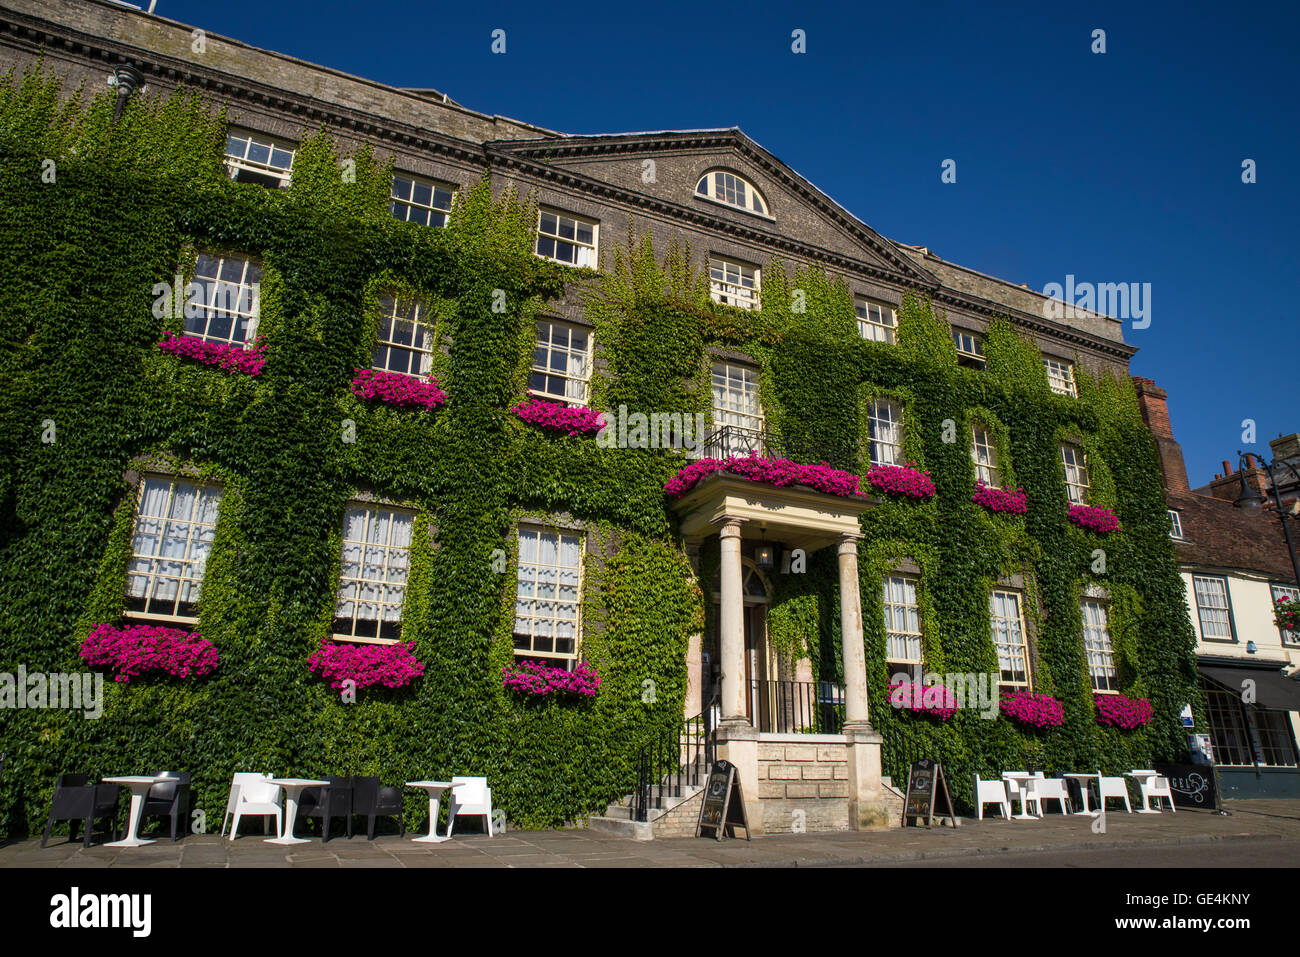 The impressive Georgian architecture of The Angel hotel in Bury St. Edmunds.  The hotel was used by Charles Dickens - Stock Image